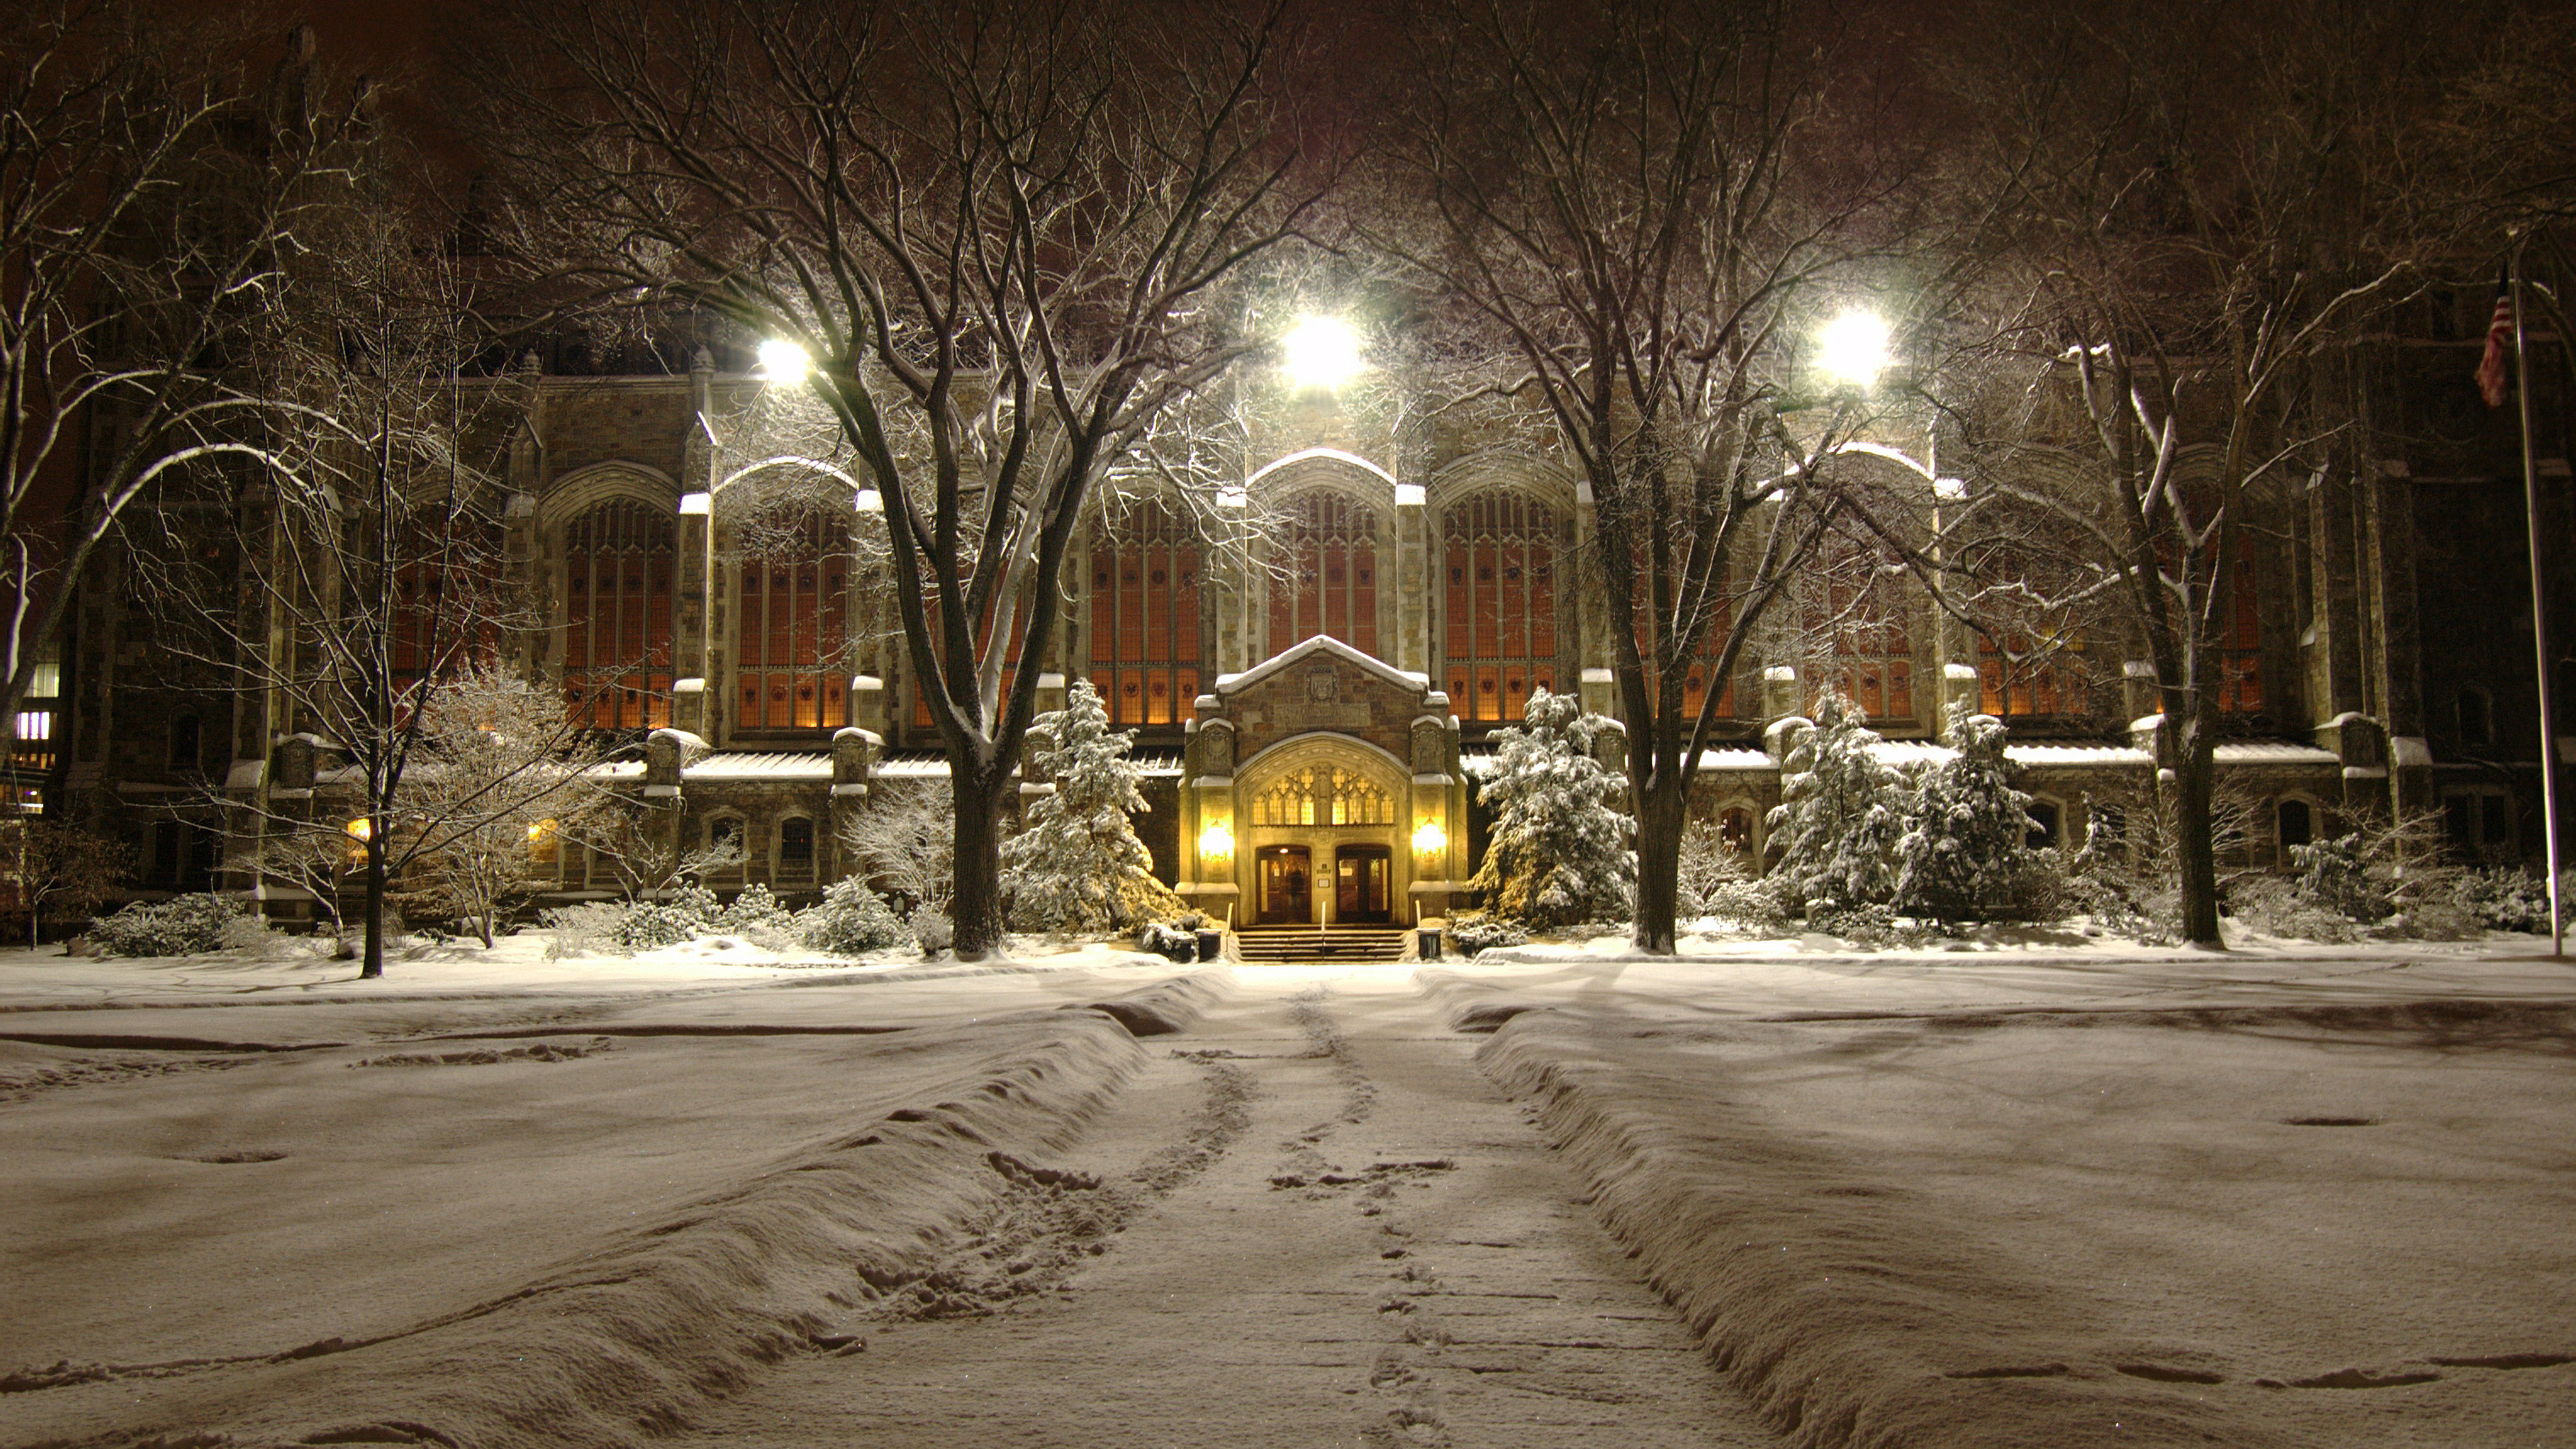 Autumn and winter at University of Michigan Law School